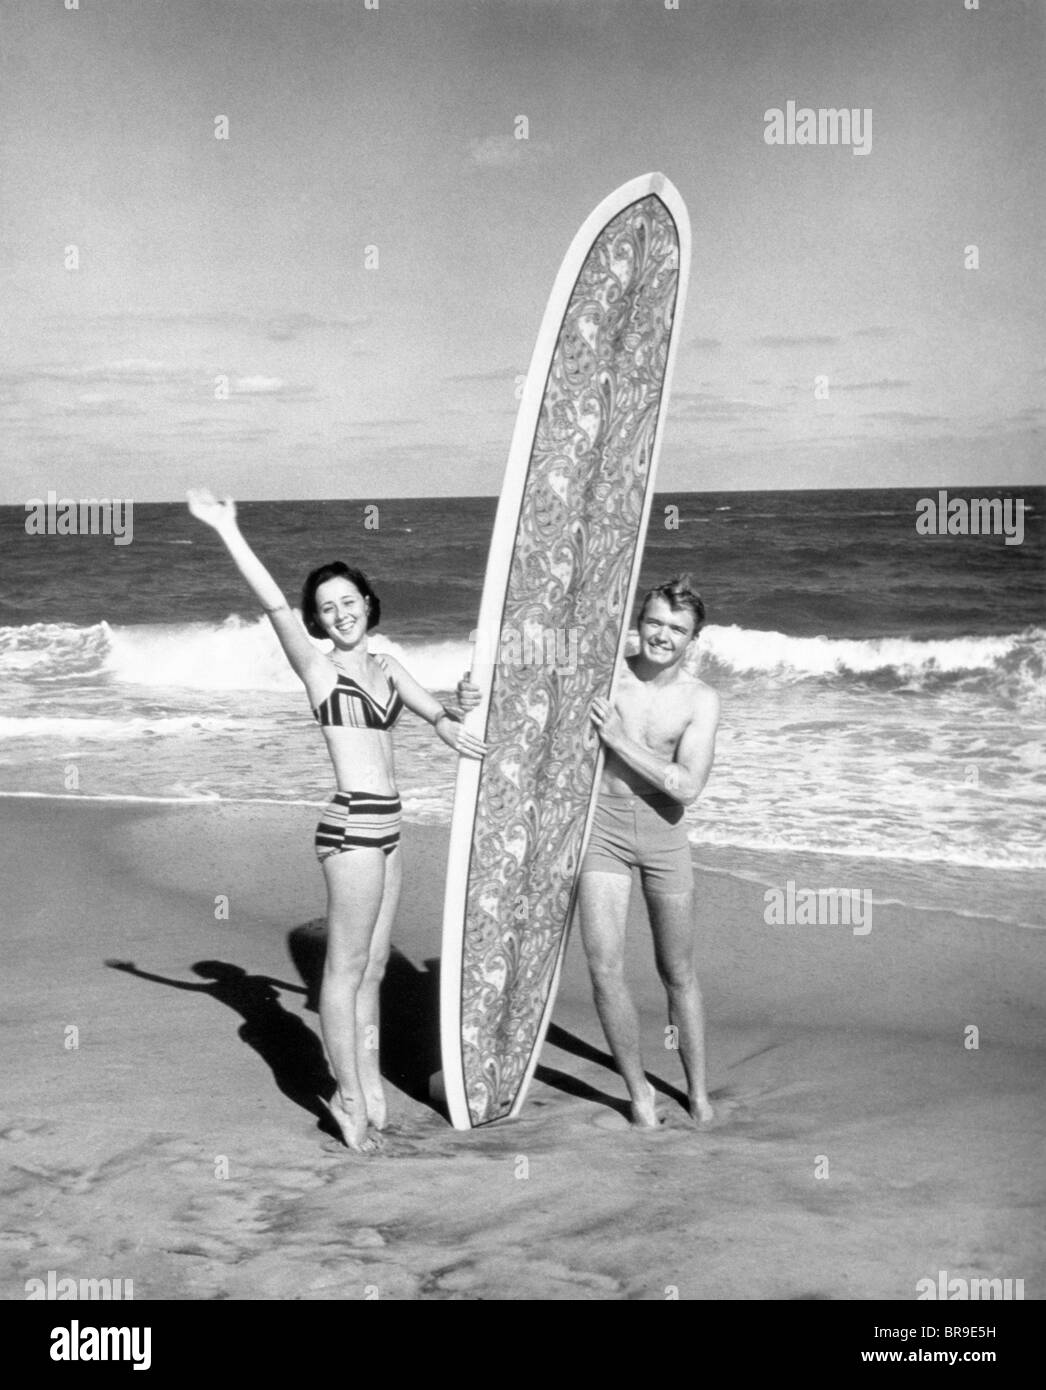 Surf Girl Fashion Black And White